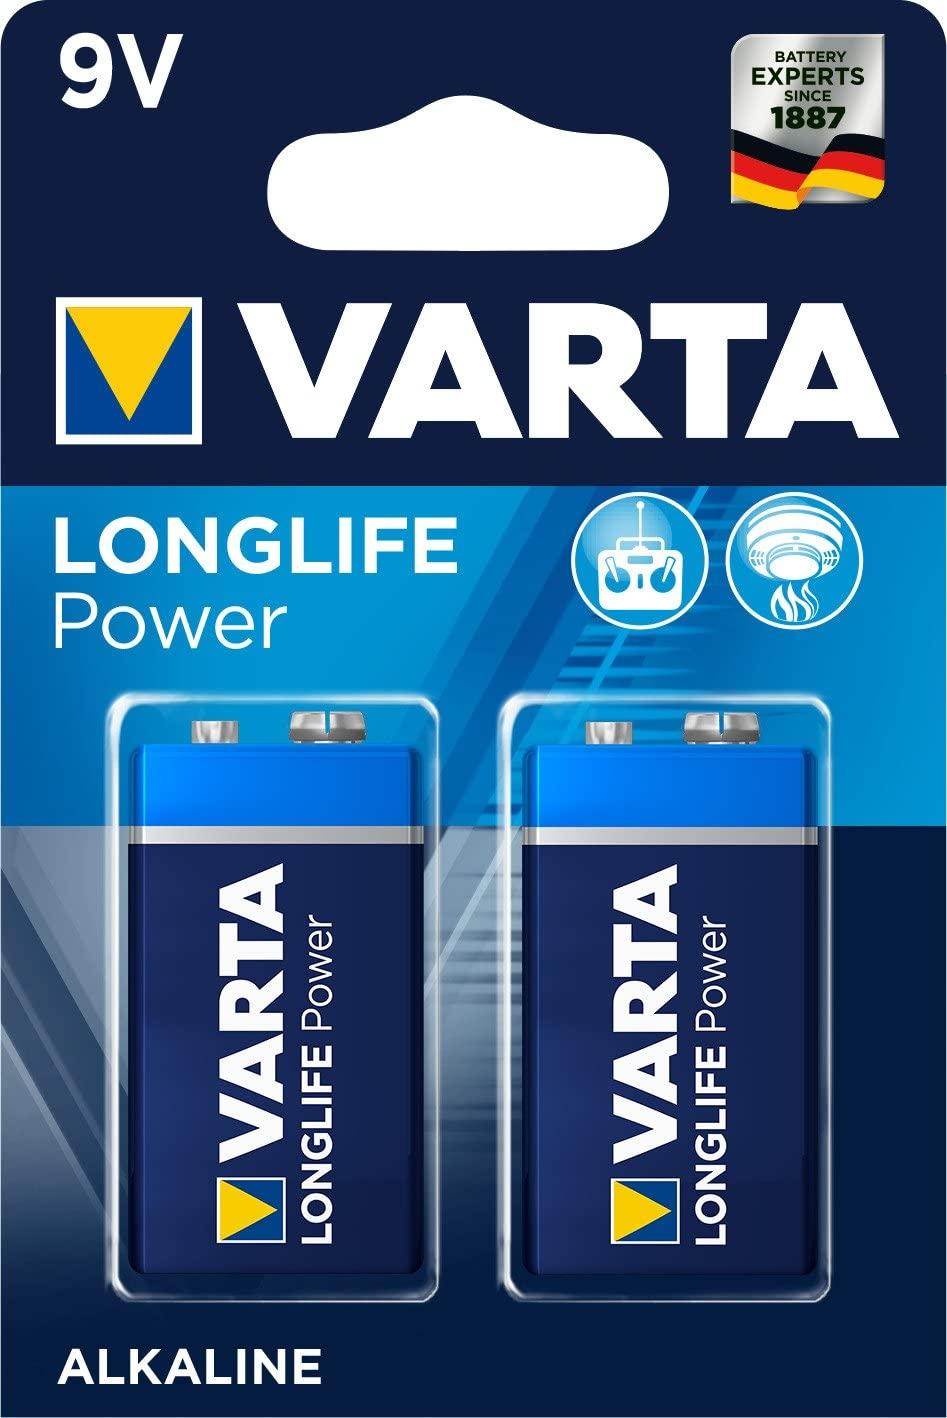 Varta Longlife Power 9v Block 6lr61 Batterie Alkaline Elektronik